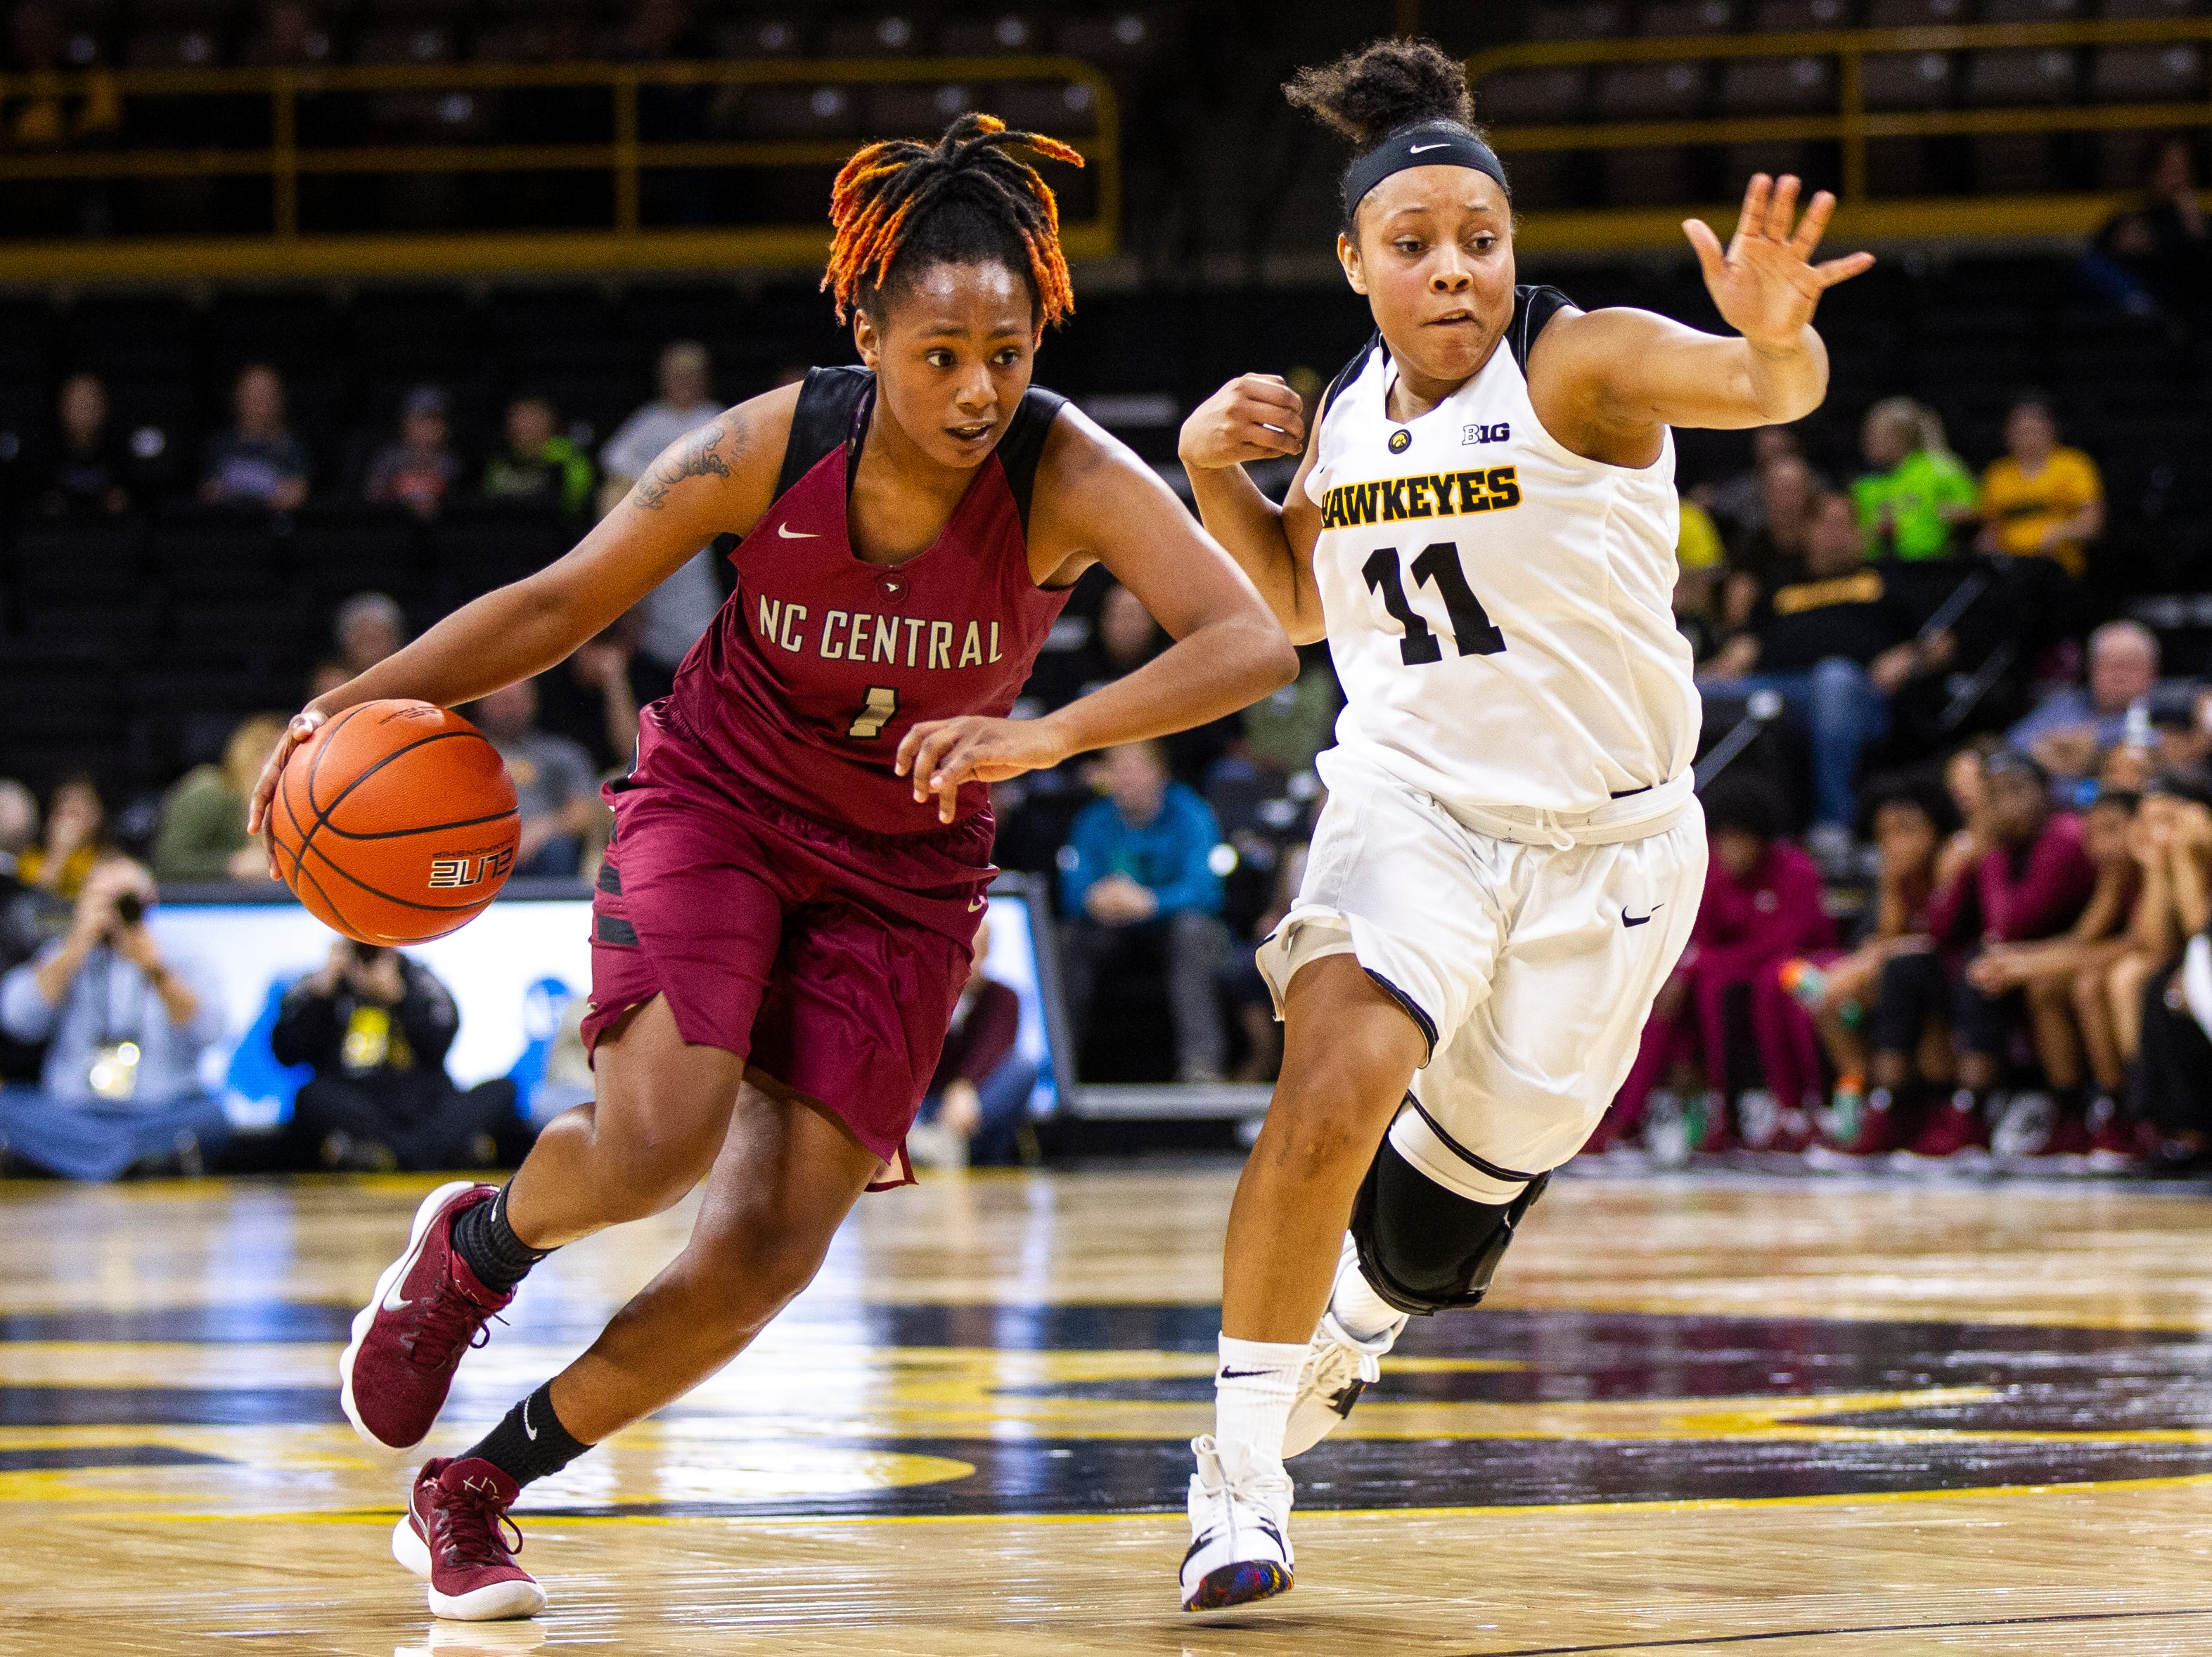 Iowa guard Tania Davis (11) defends North Carolina Central's Dasmine Kasey (1) during an NCAA women's basketball game on Saturday, Nov. 17, 2018, at Carver-Hawkeye Arena in Iowa City.